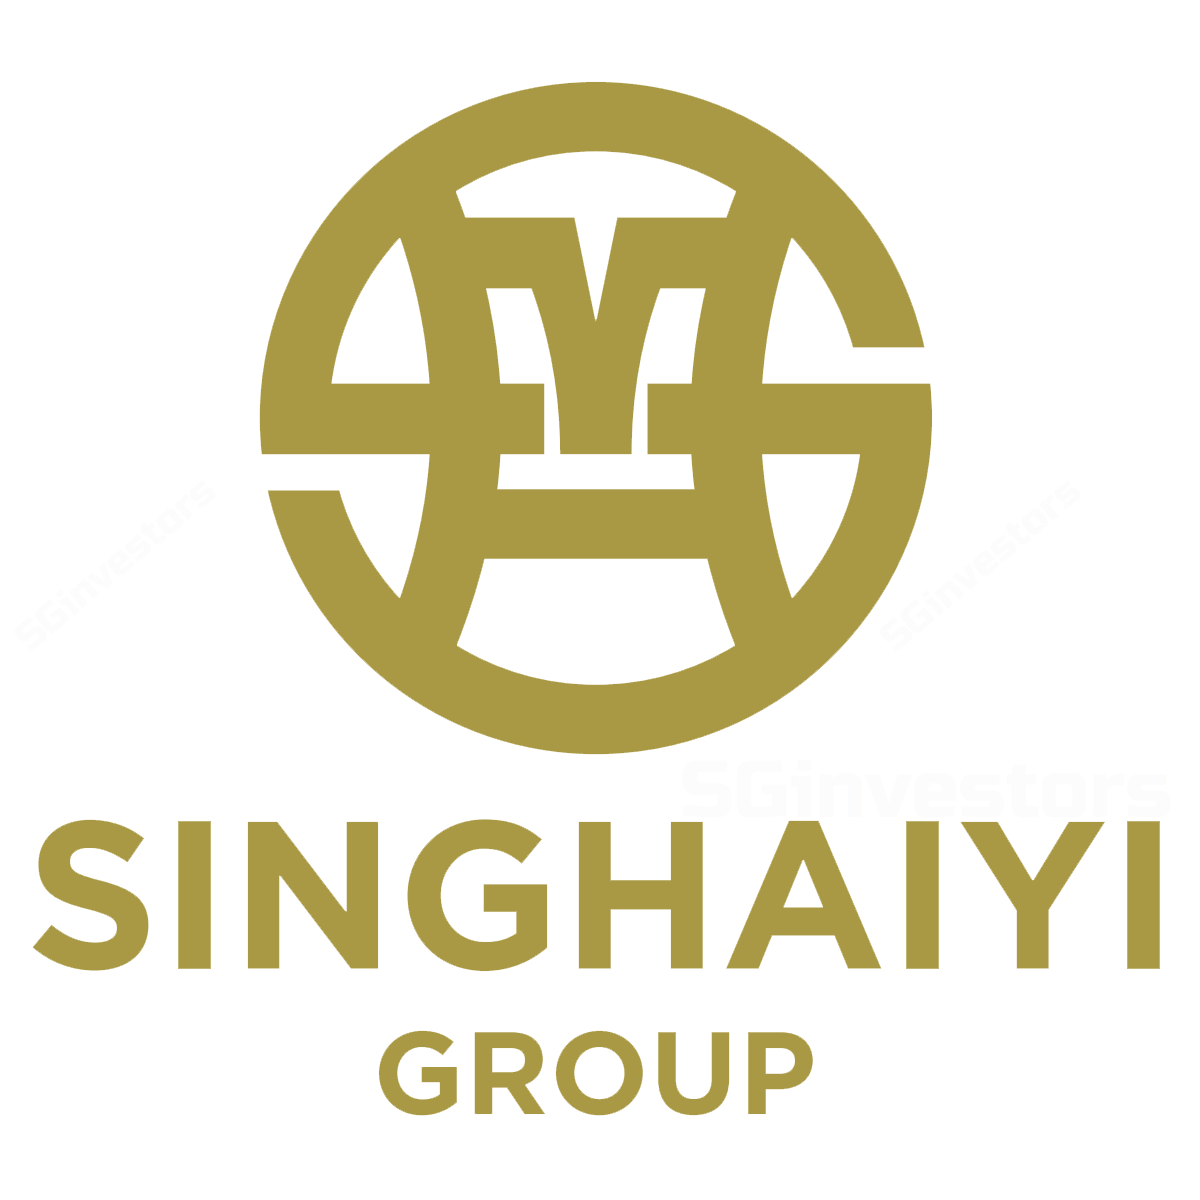 SingHaiyi Group Ltd - CIMB Research 2018-01-18: A Well-rounded Property Specialist